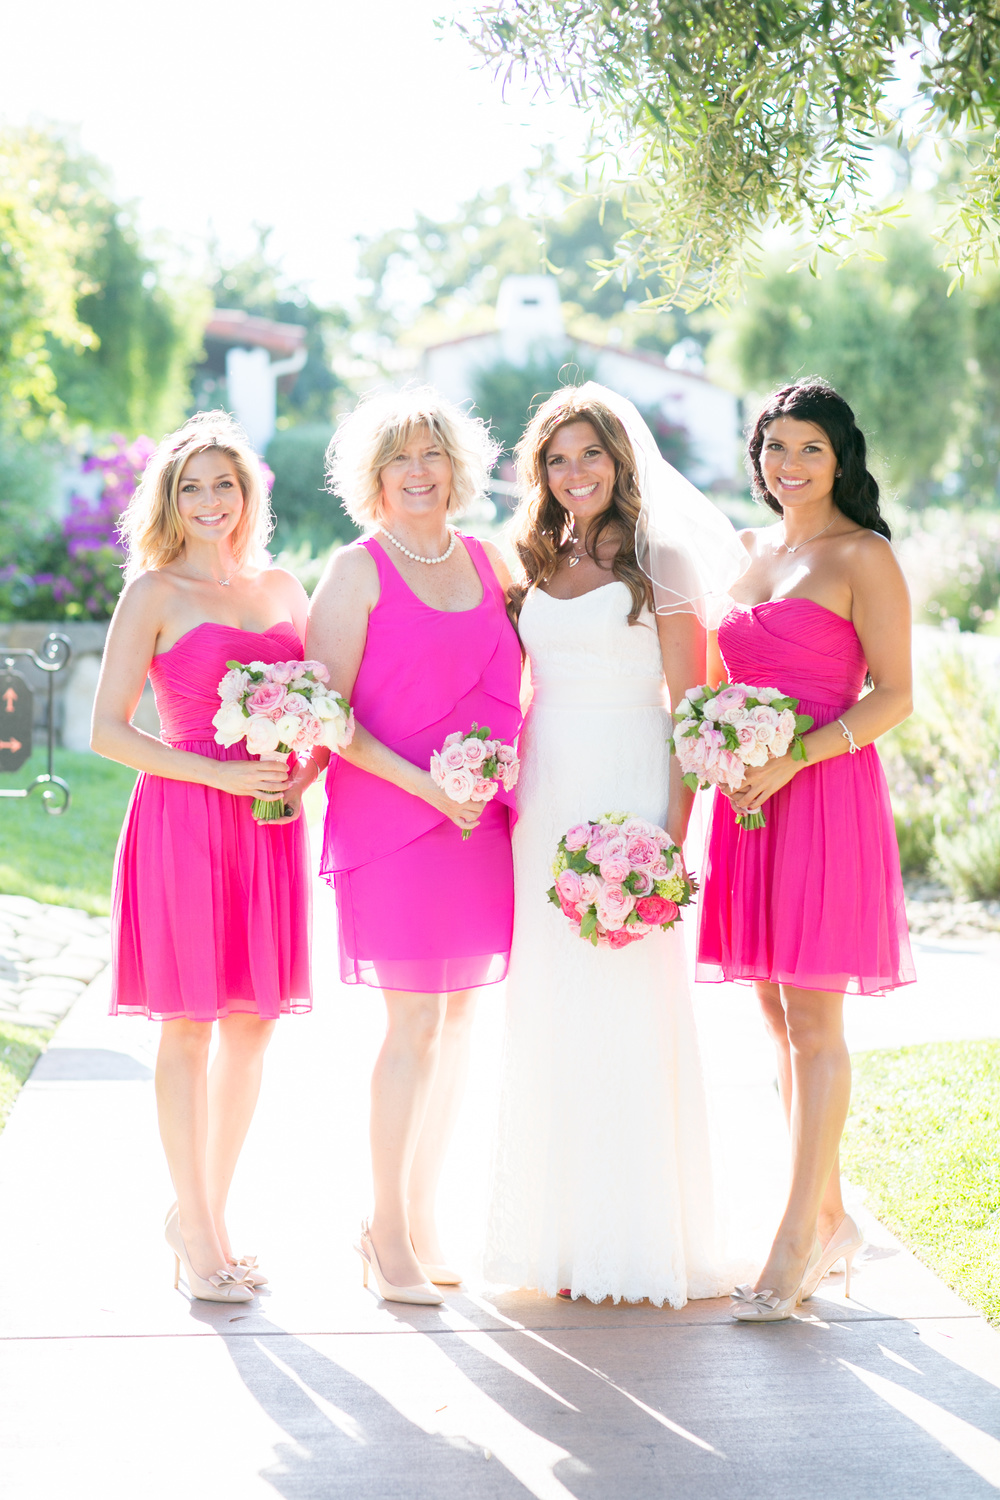 This bride just loved - pink.  All shades and hues.  Mom and bridesmaids looked radiant in the vibrant pink.   Their bouquets had the softer shades while the bride popped in the brighter hues into hers.  Don't be afraid of bright colors at a wedding.  Done in the right way they can be beautiful.  Photographer:  MiBelle   Florist:  Rock Rose   Venue:  Ojai Valley Inn & Spa